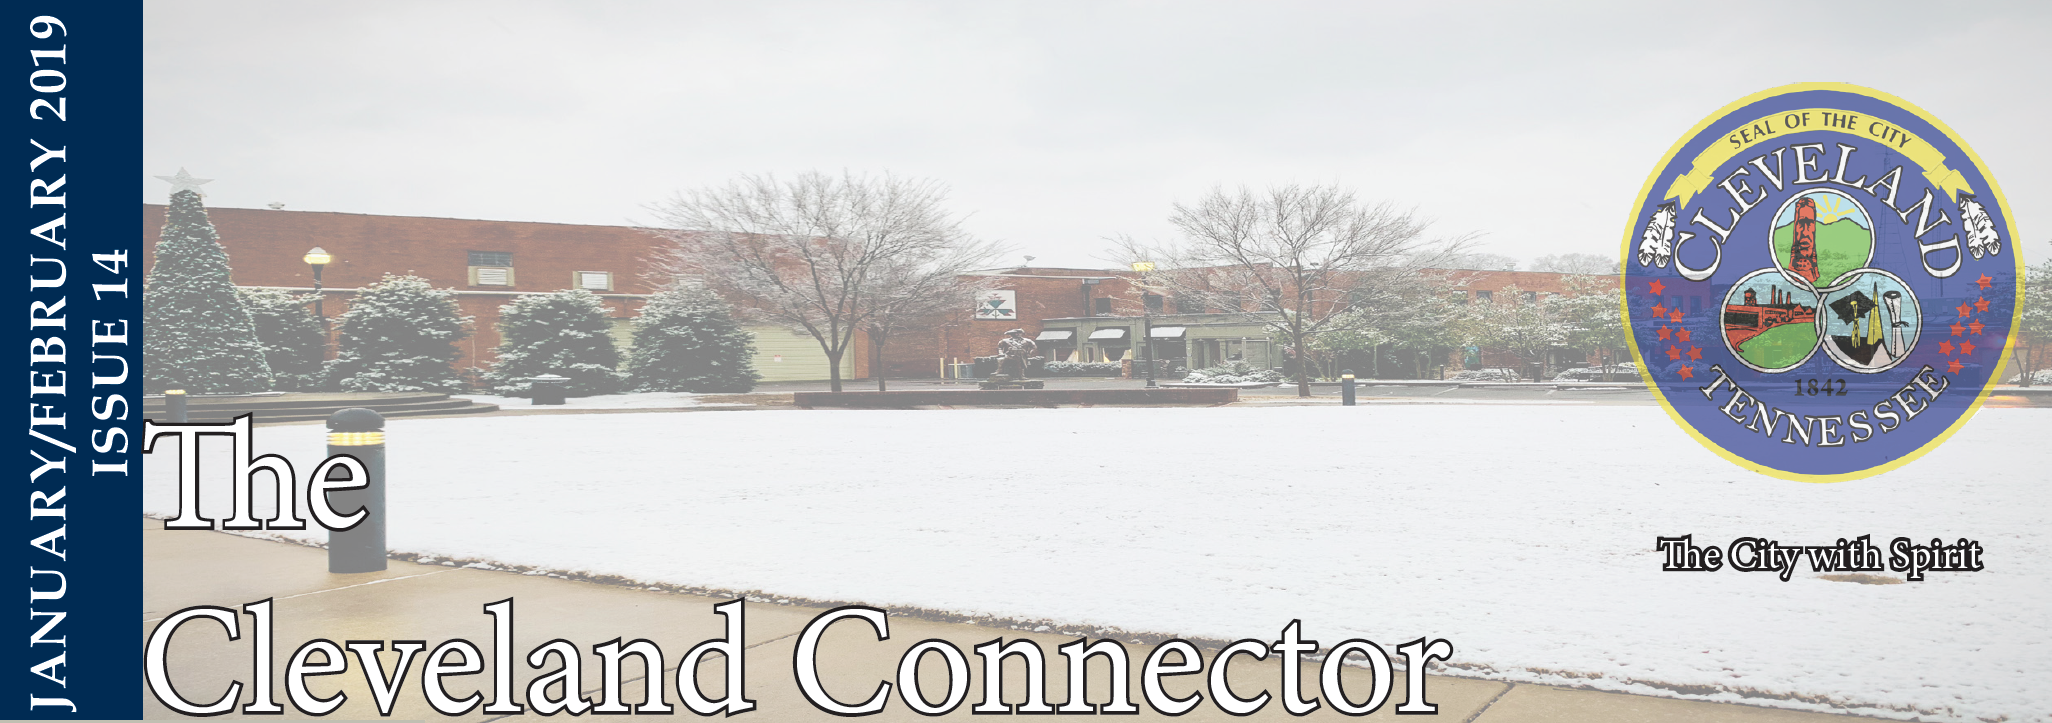 January/February 2019 Issue 14 - The Cleveland Connector Opens in new window